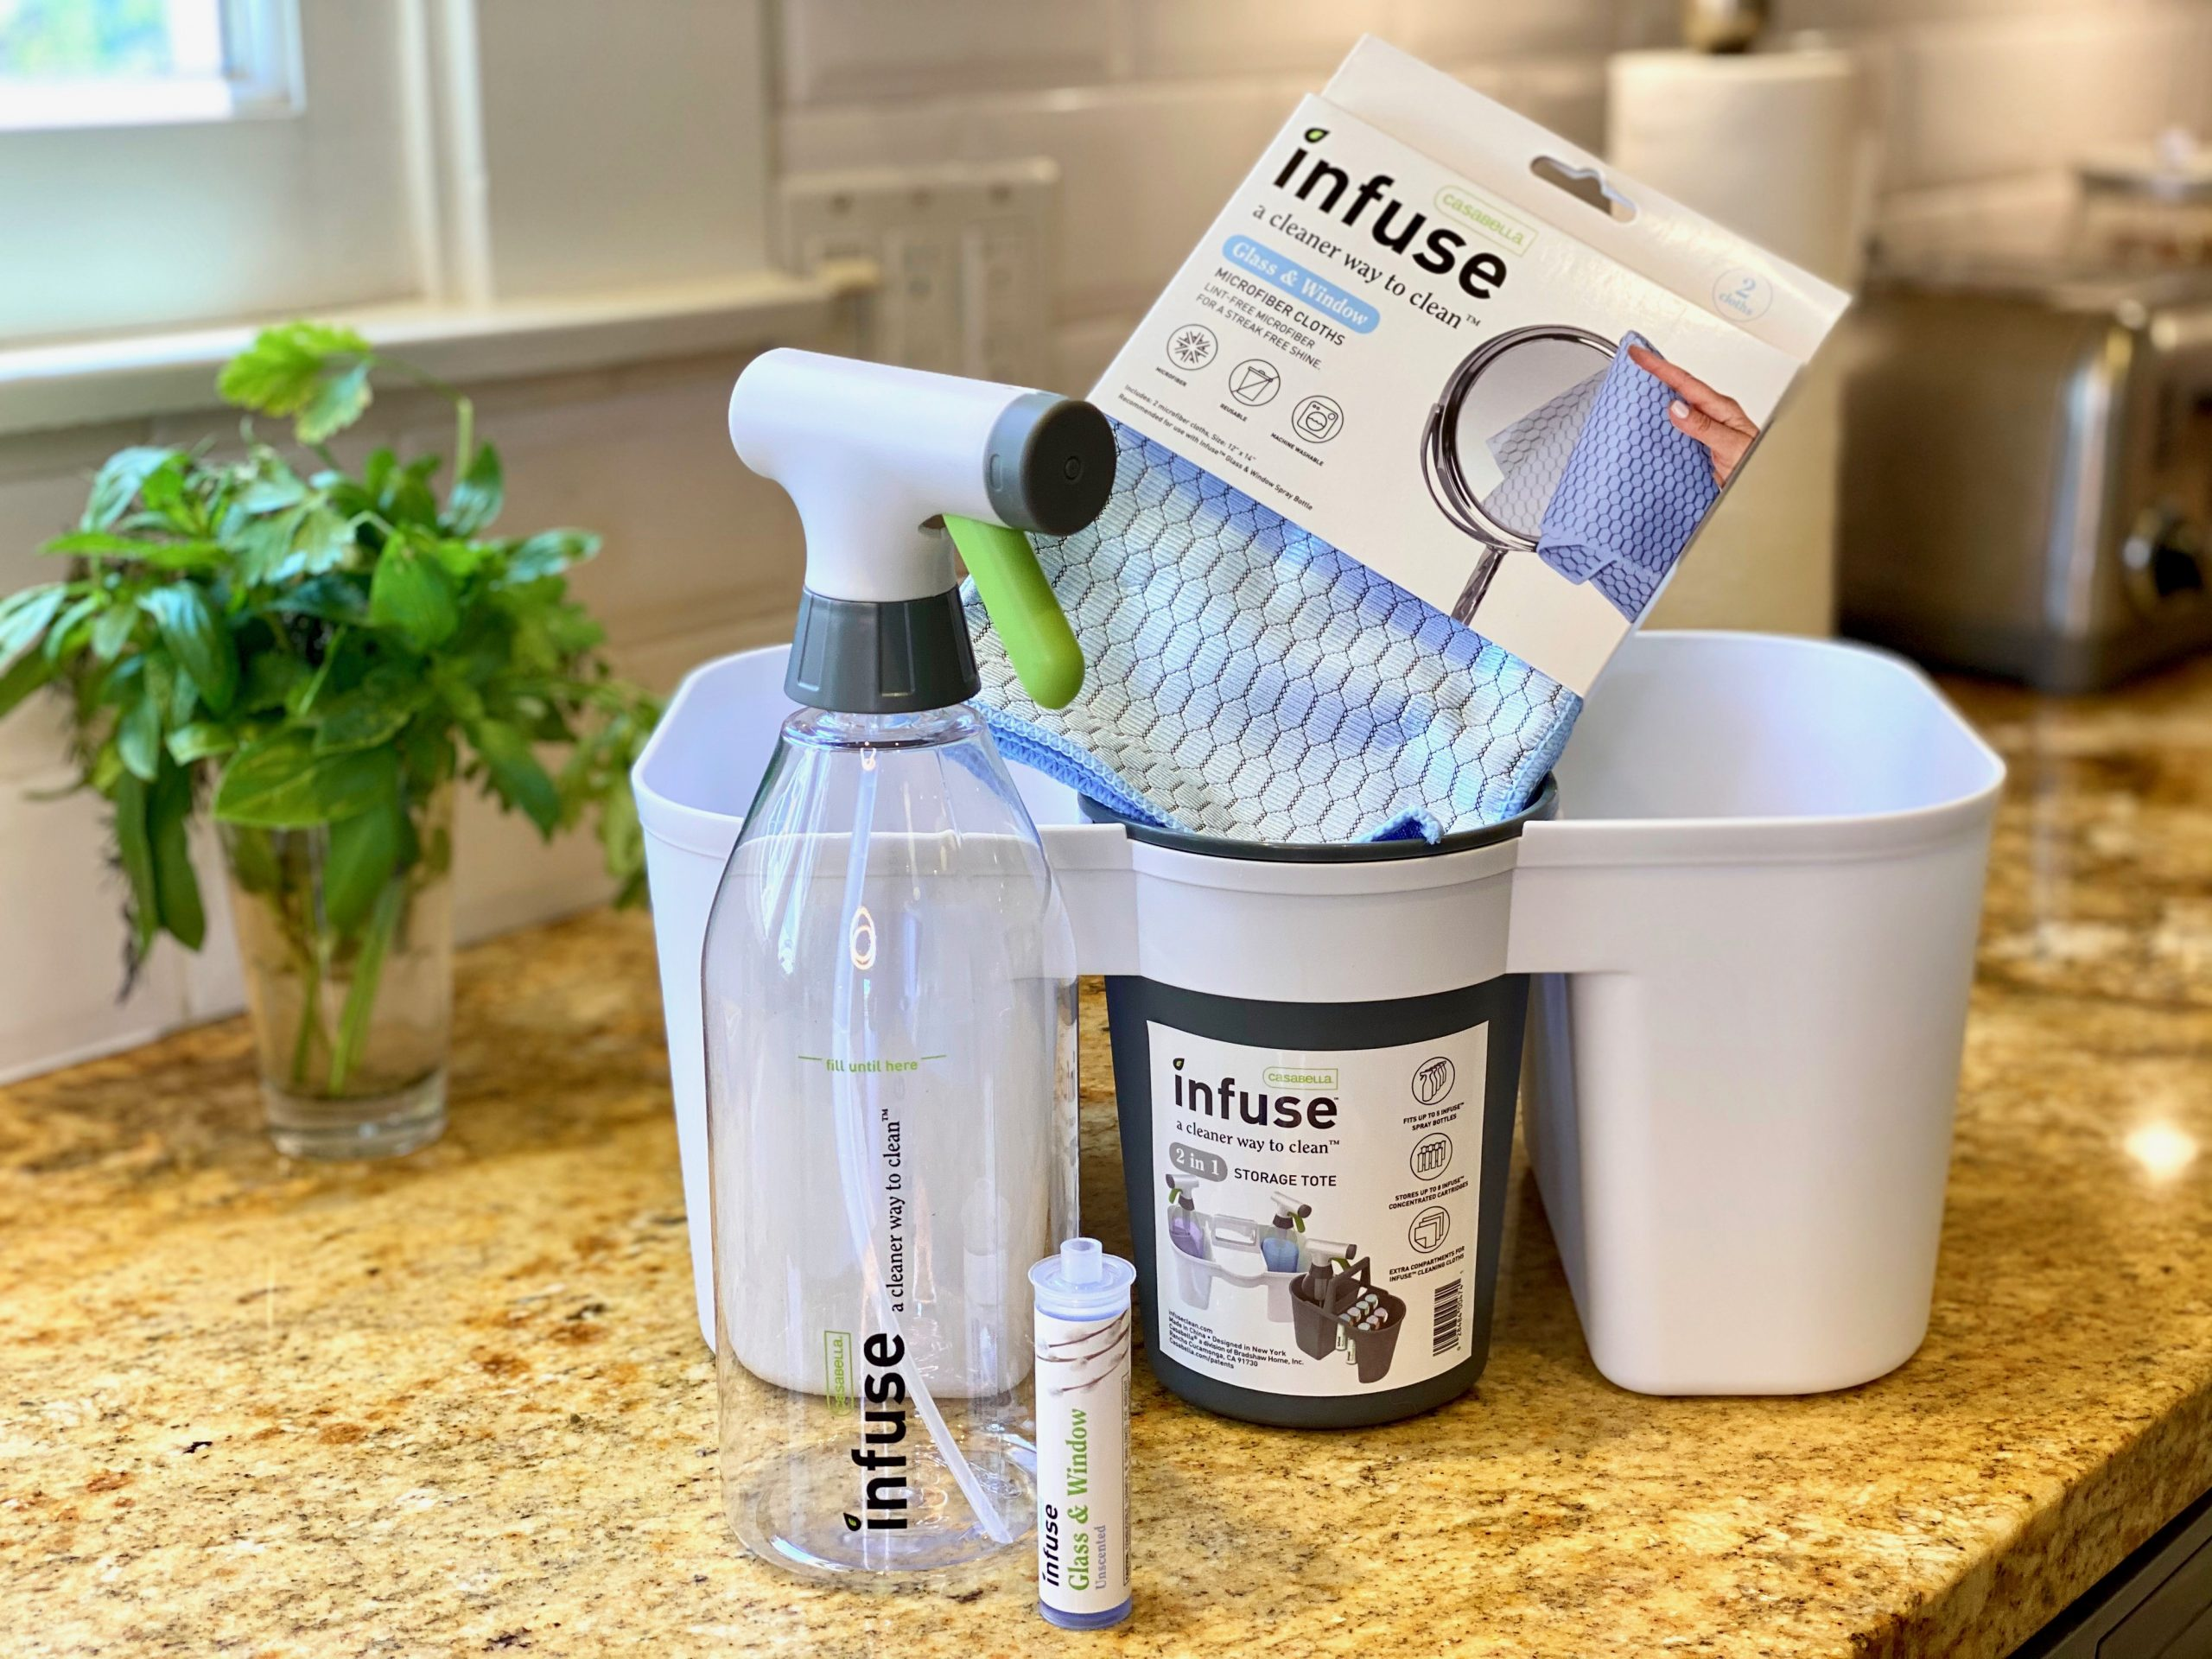 Infuse Cleaning System caddy on kitchen counter with golden granite countertop